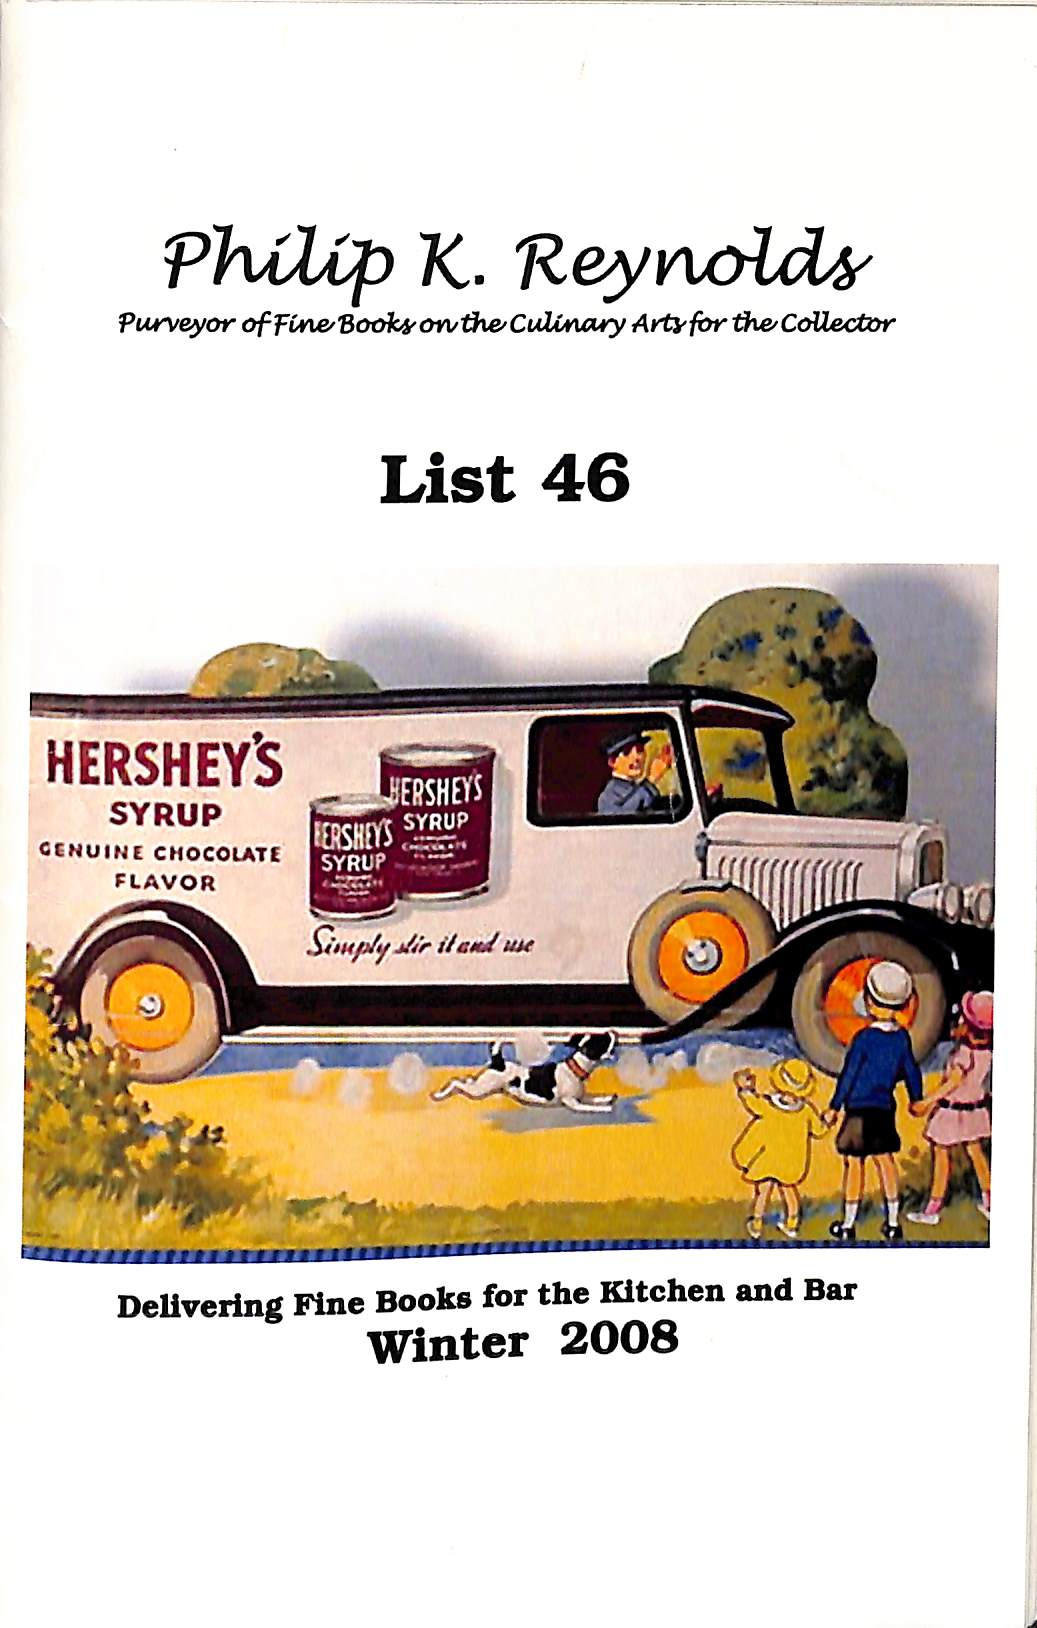 Philip K. Reynolds: Purveyor of Fine Books on the Culinary Arts for the Collector: List 46